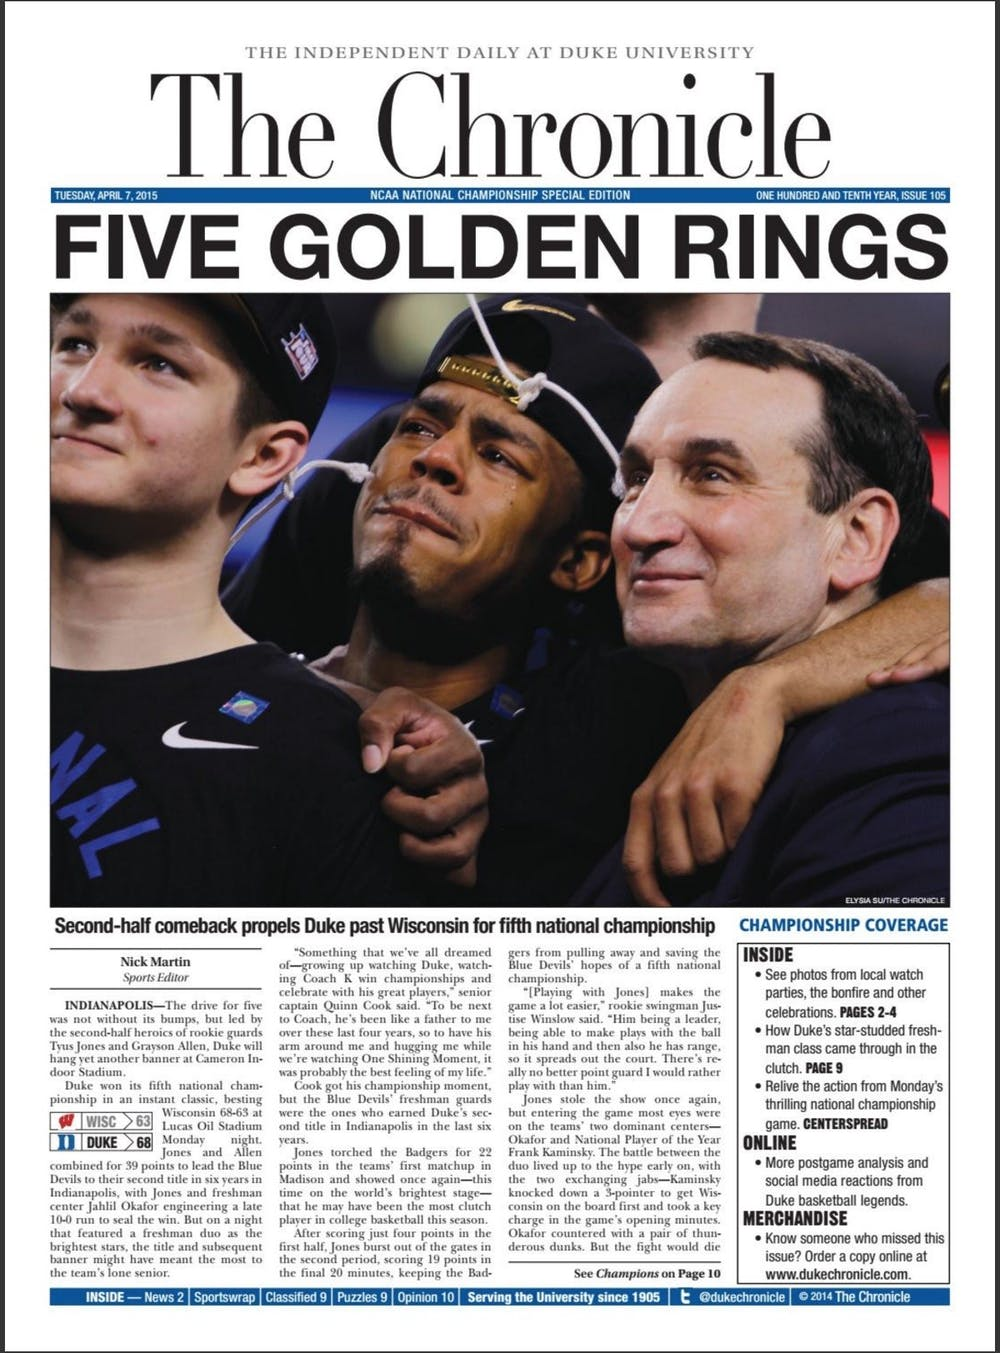 The most recent national title for Duke men's basketball was just a short six years ago. The star-studded Blue Devil roster contained five future NBA talents. Tyus Jones went off for 23 points in an unforgettable championship game on April 6, 2015.